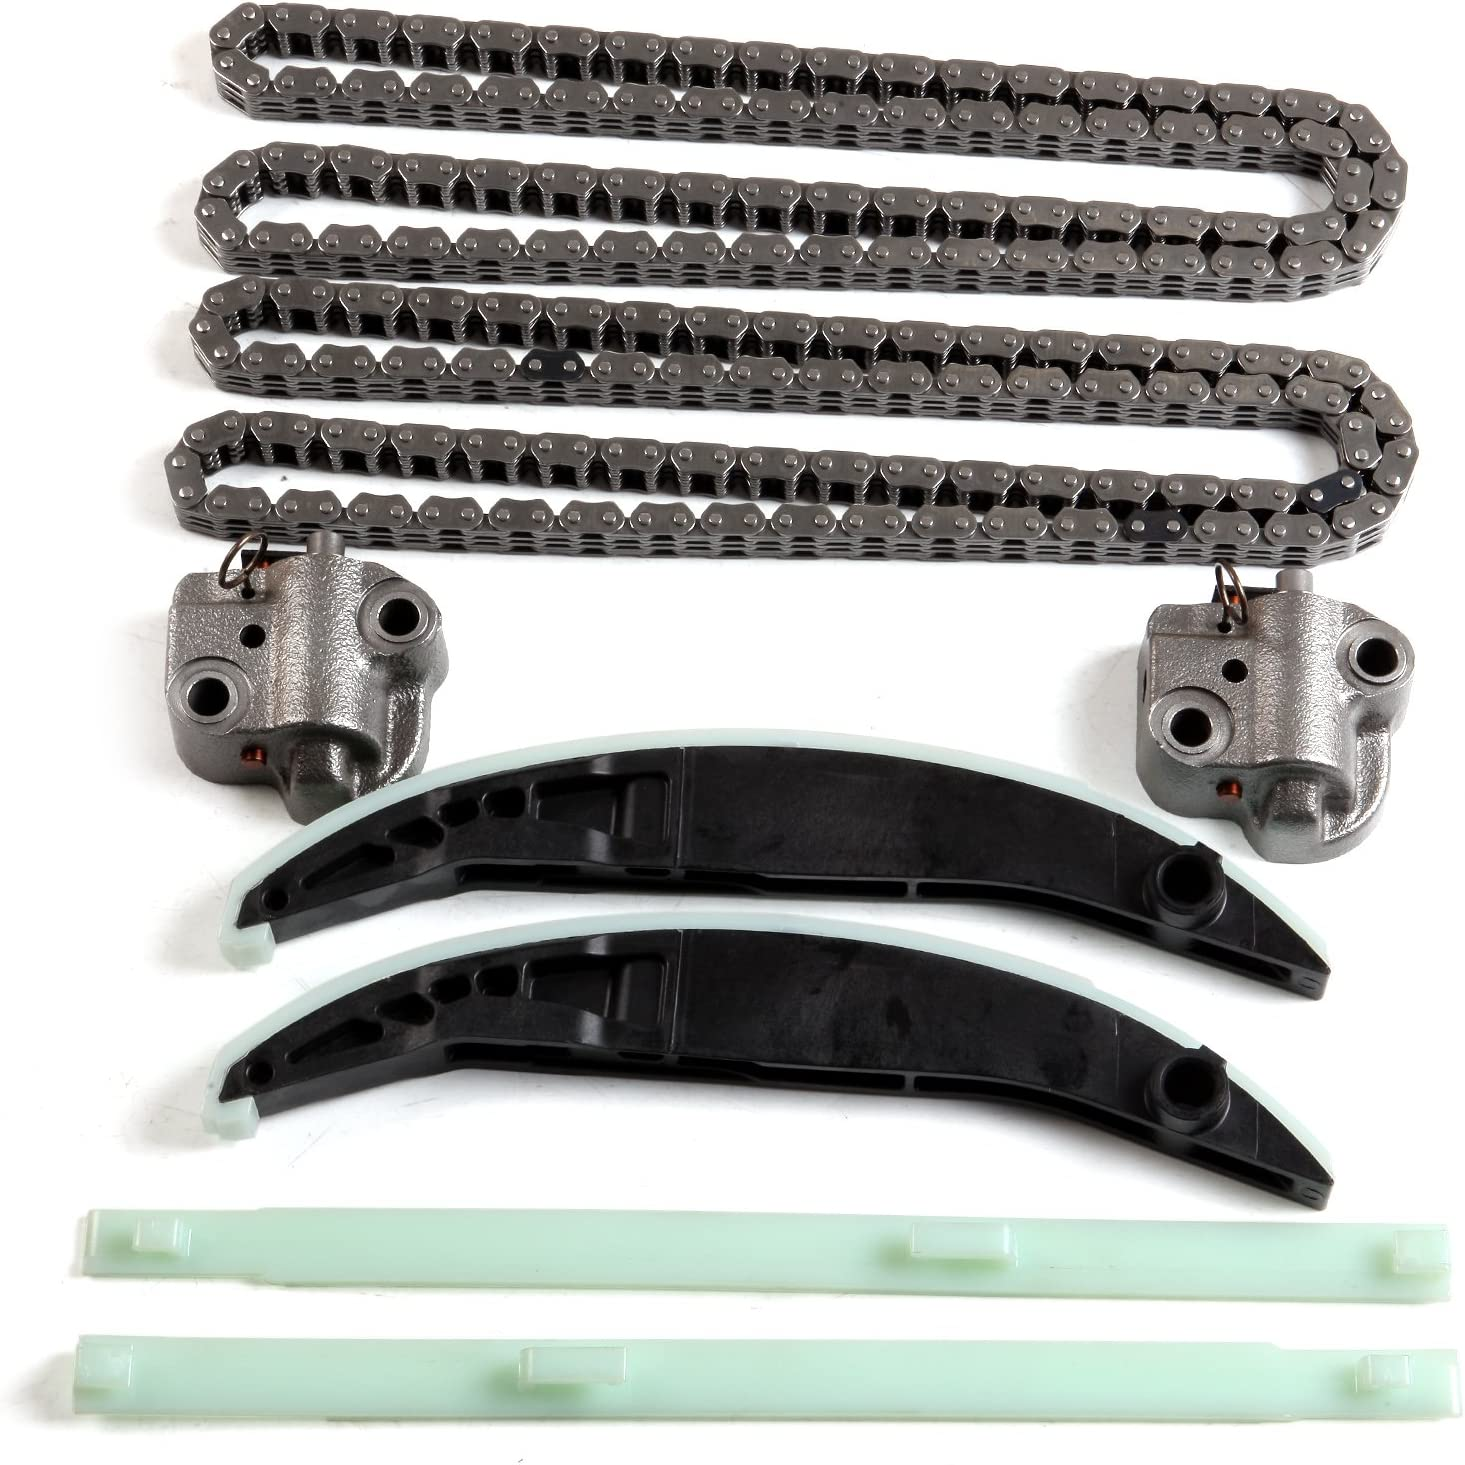 FORD FUSION 3.0L 183 V6 DOHC LINCOLN ZEPHRY MERCURY TIMING CHAIN KIT